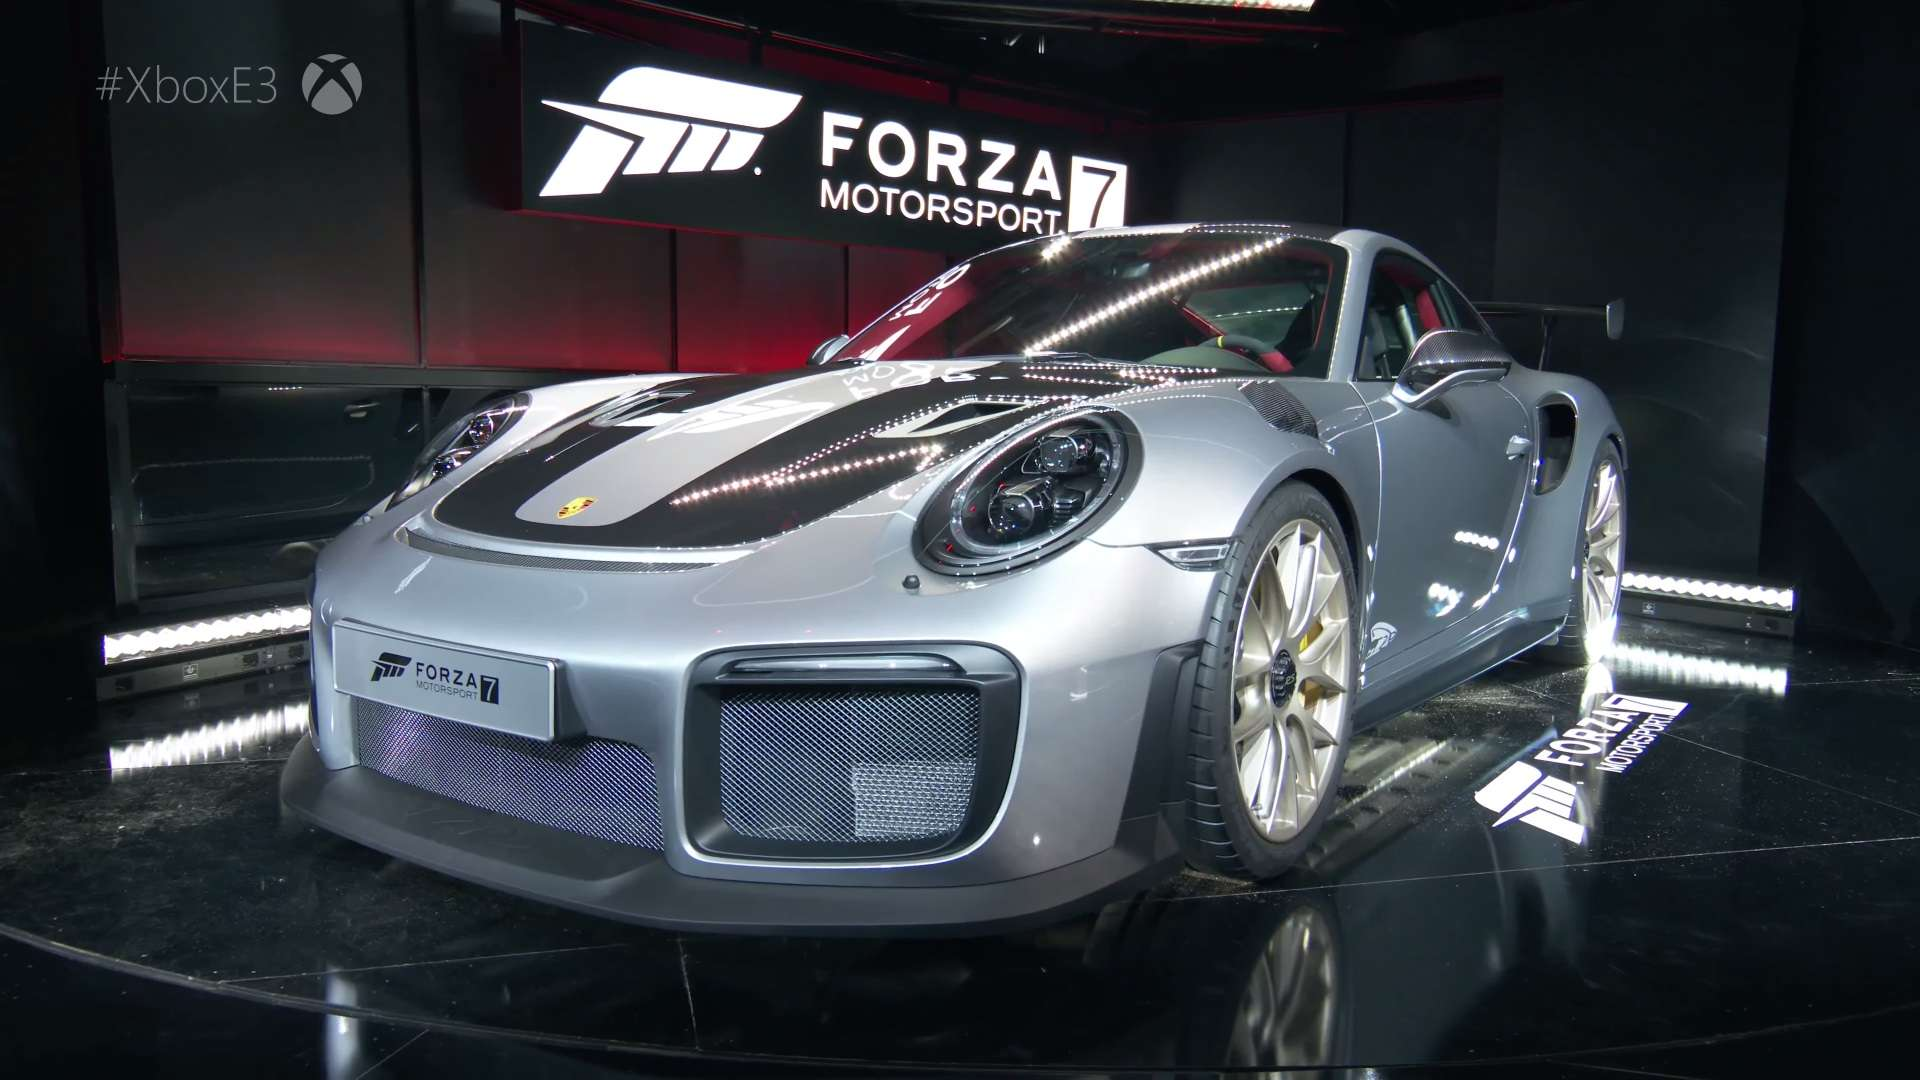 2018 Porsche 911 GT2 RS Revealed With New Microsoft Xbox One X And Forza Motorsport 7